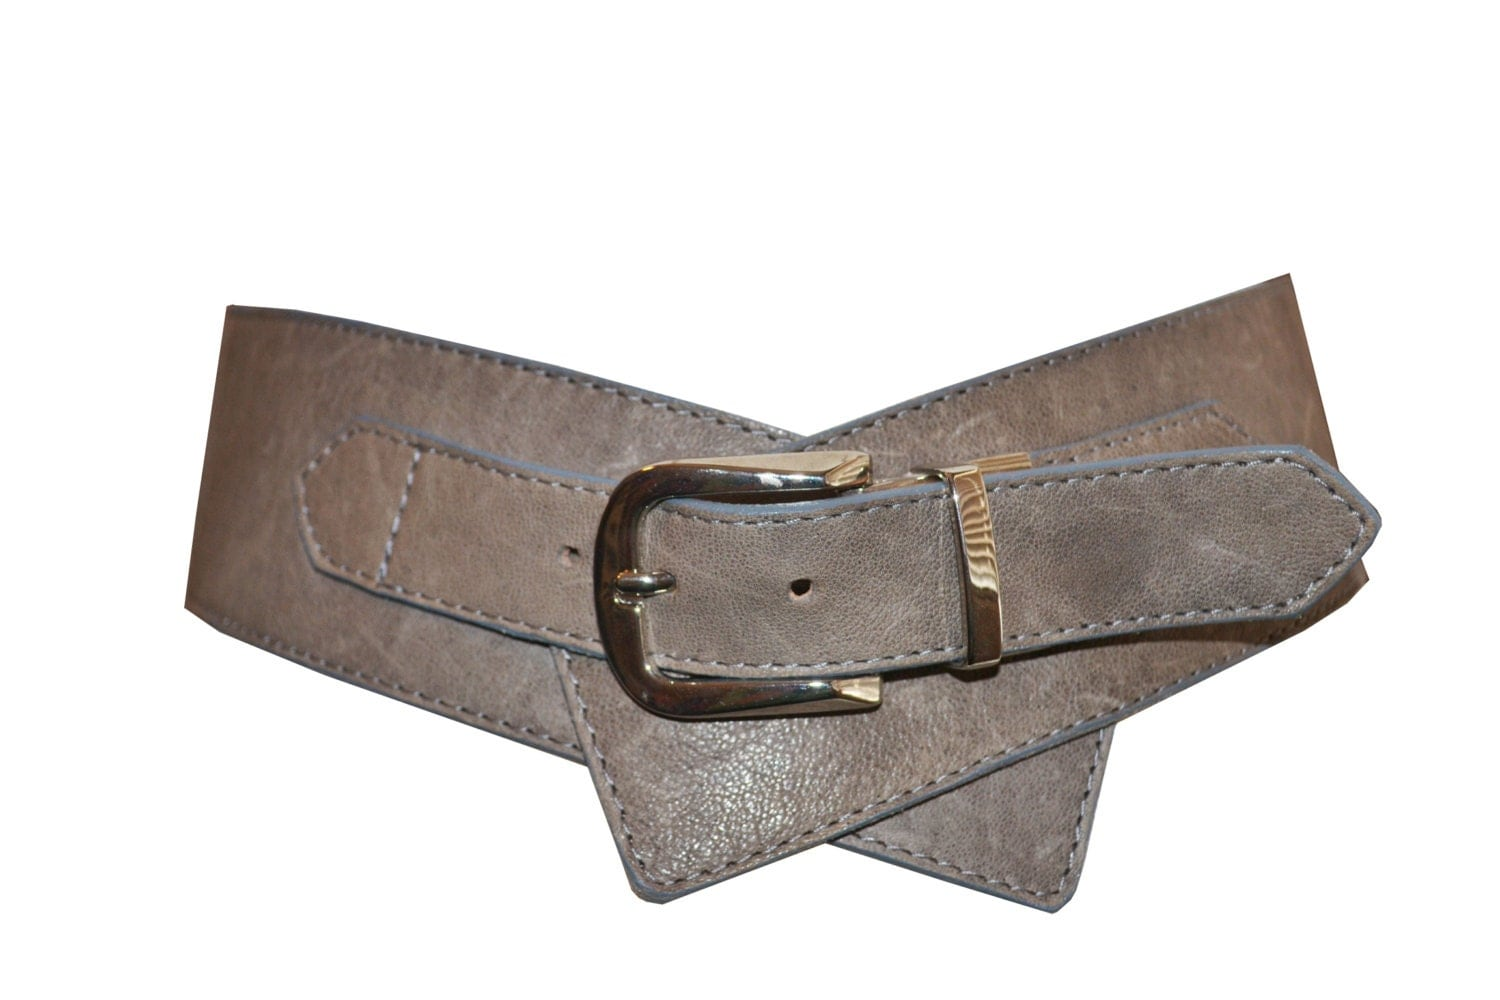 s leather waist belt grey leather with silver